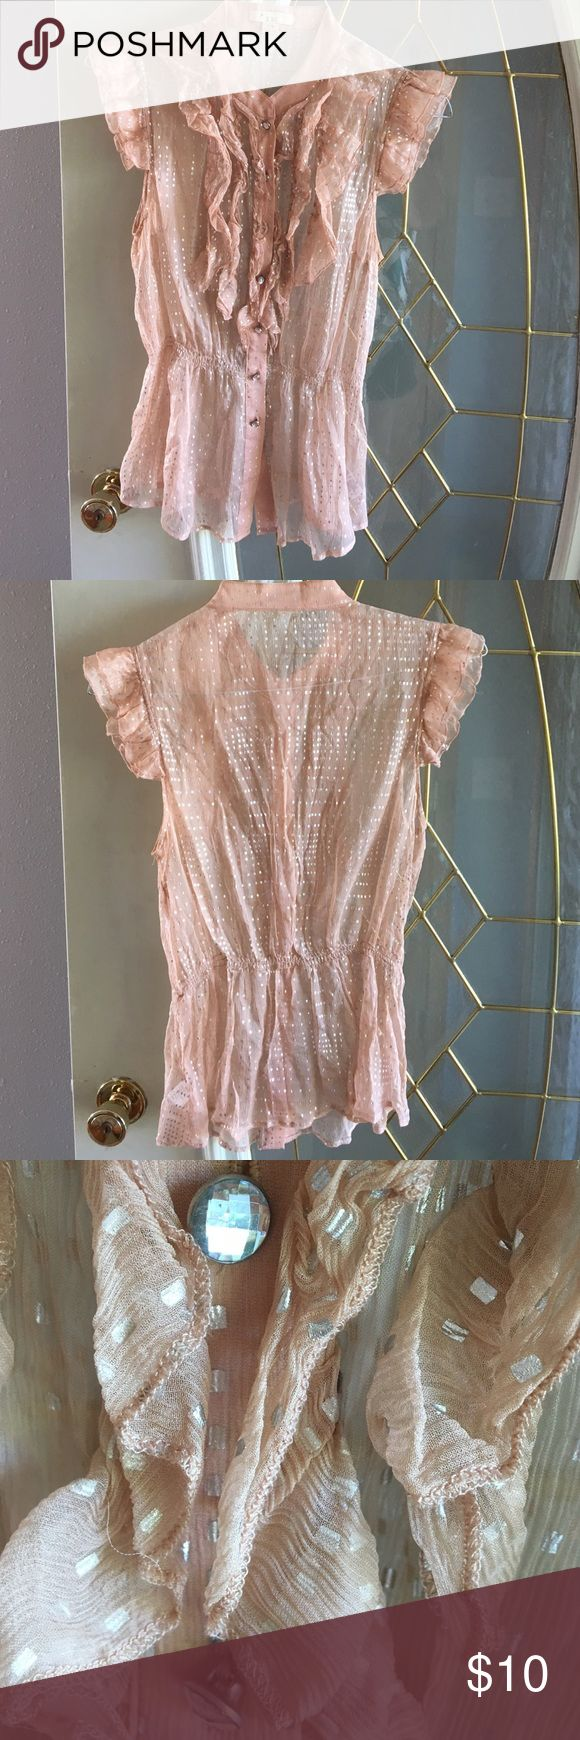 Forever 21/ XXI metallic blouse Sheer and feminine! Soft peach with silver metallic. The buttons are the best! Forever 21 Tops Blouses